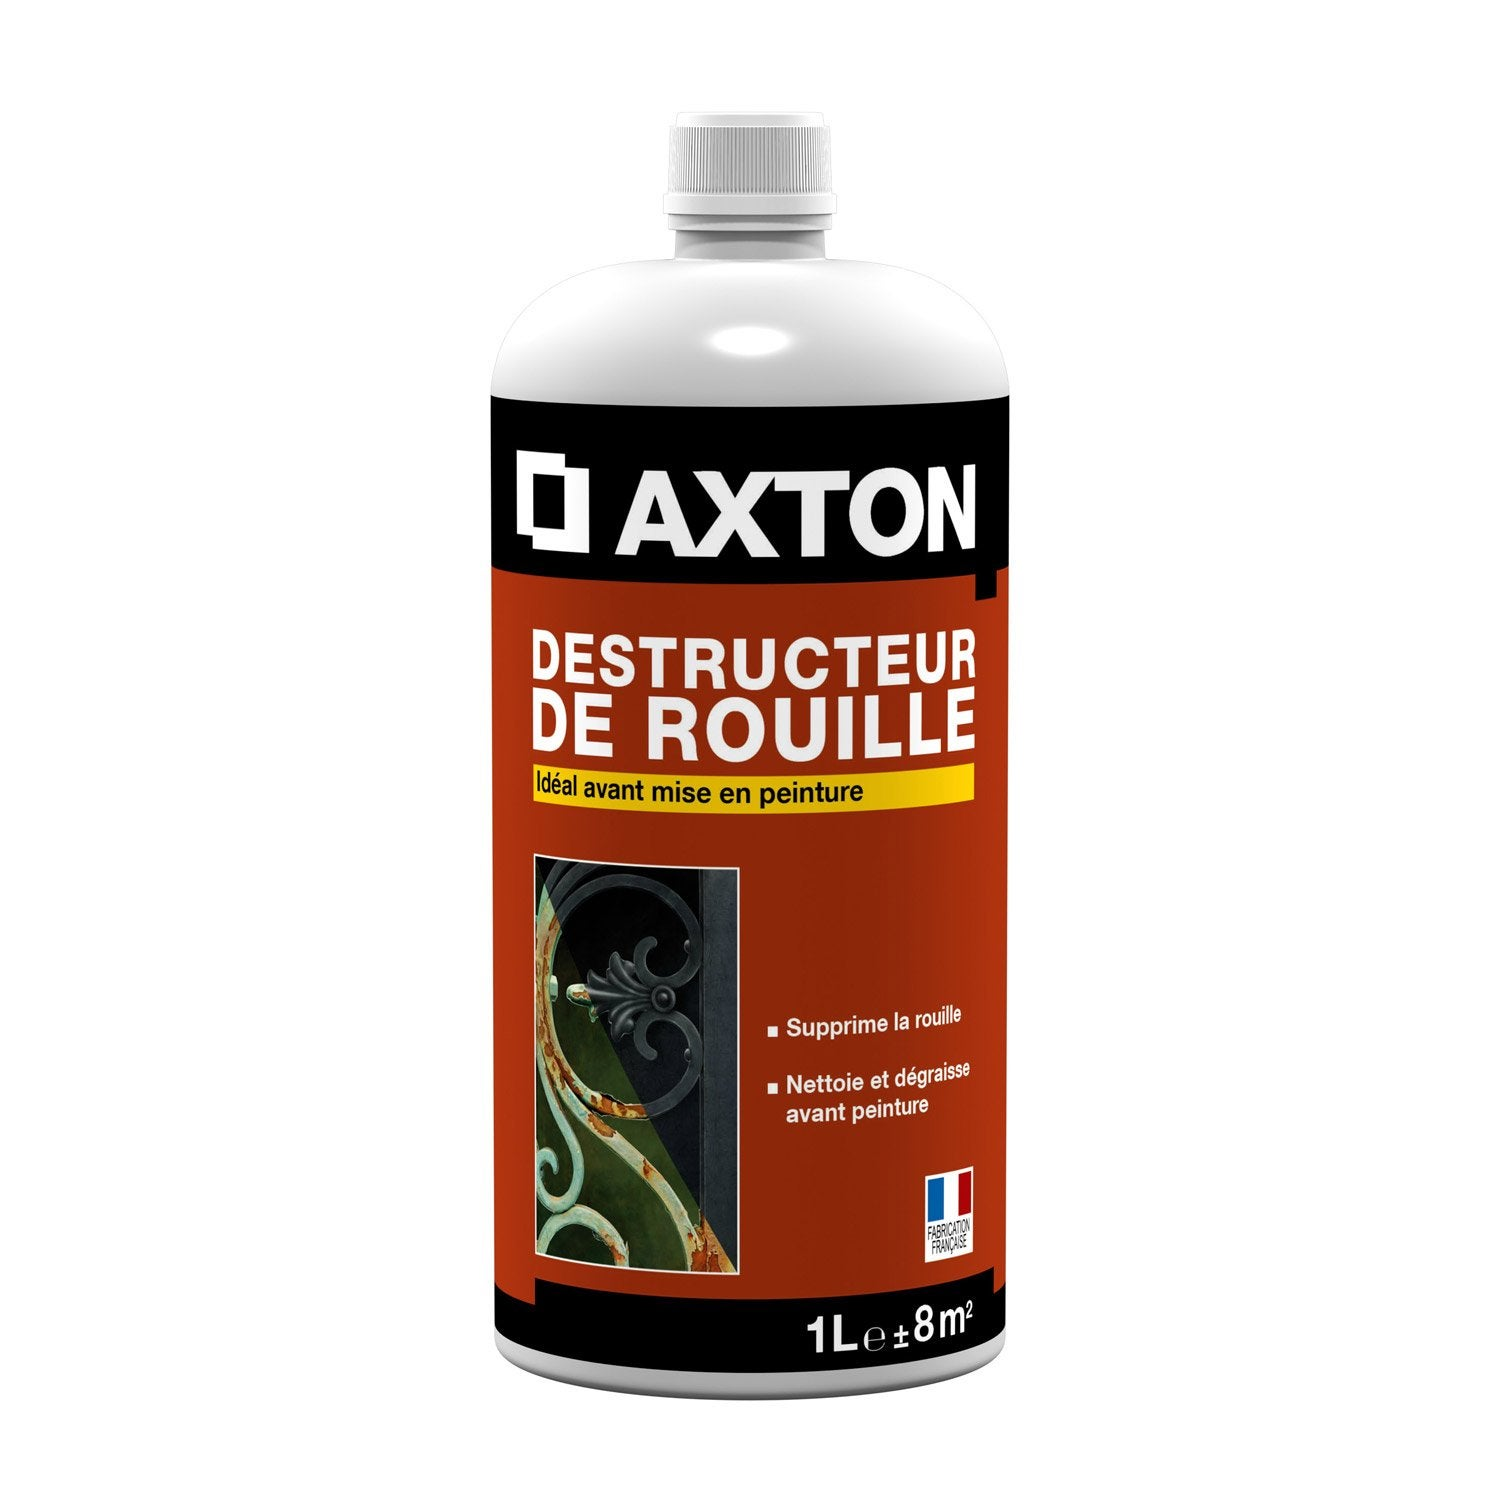 Destructeur de rouille ext rieur axton 1 l leroy merlin for Produit anti punaise de lit leroy merlin